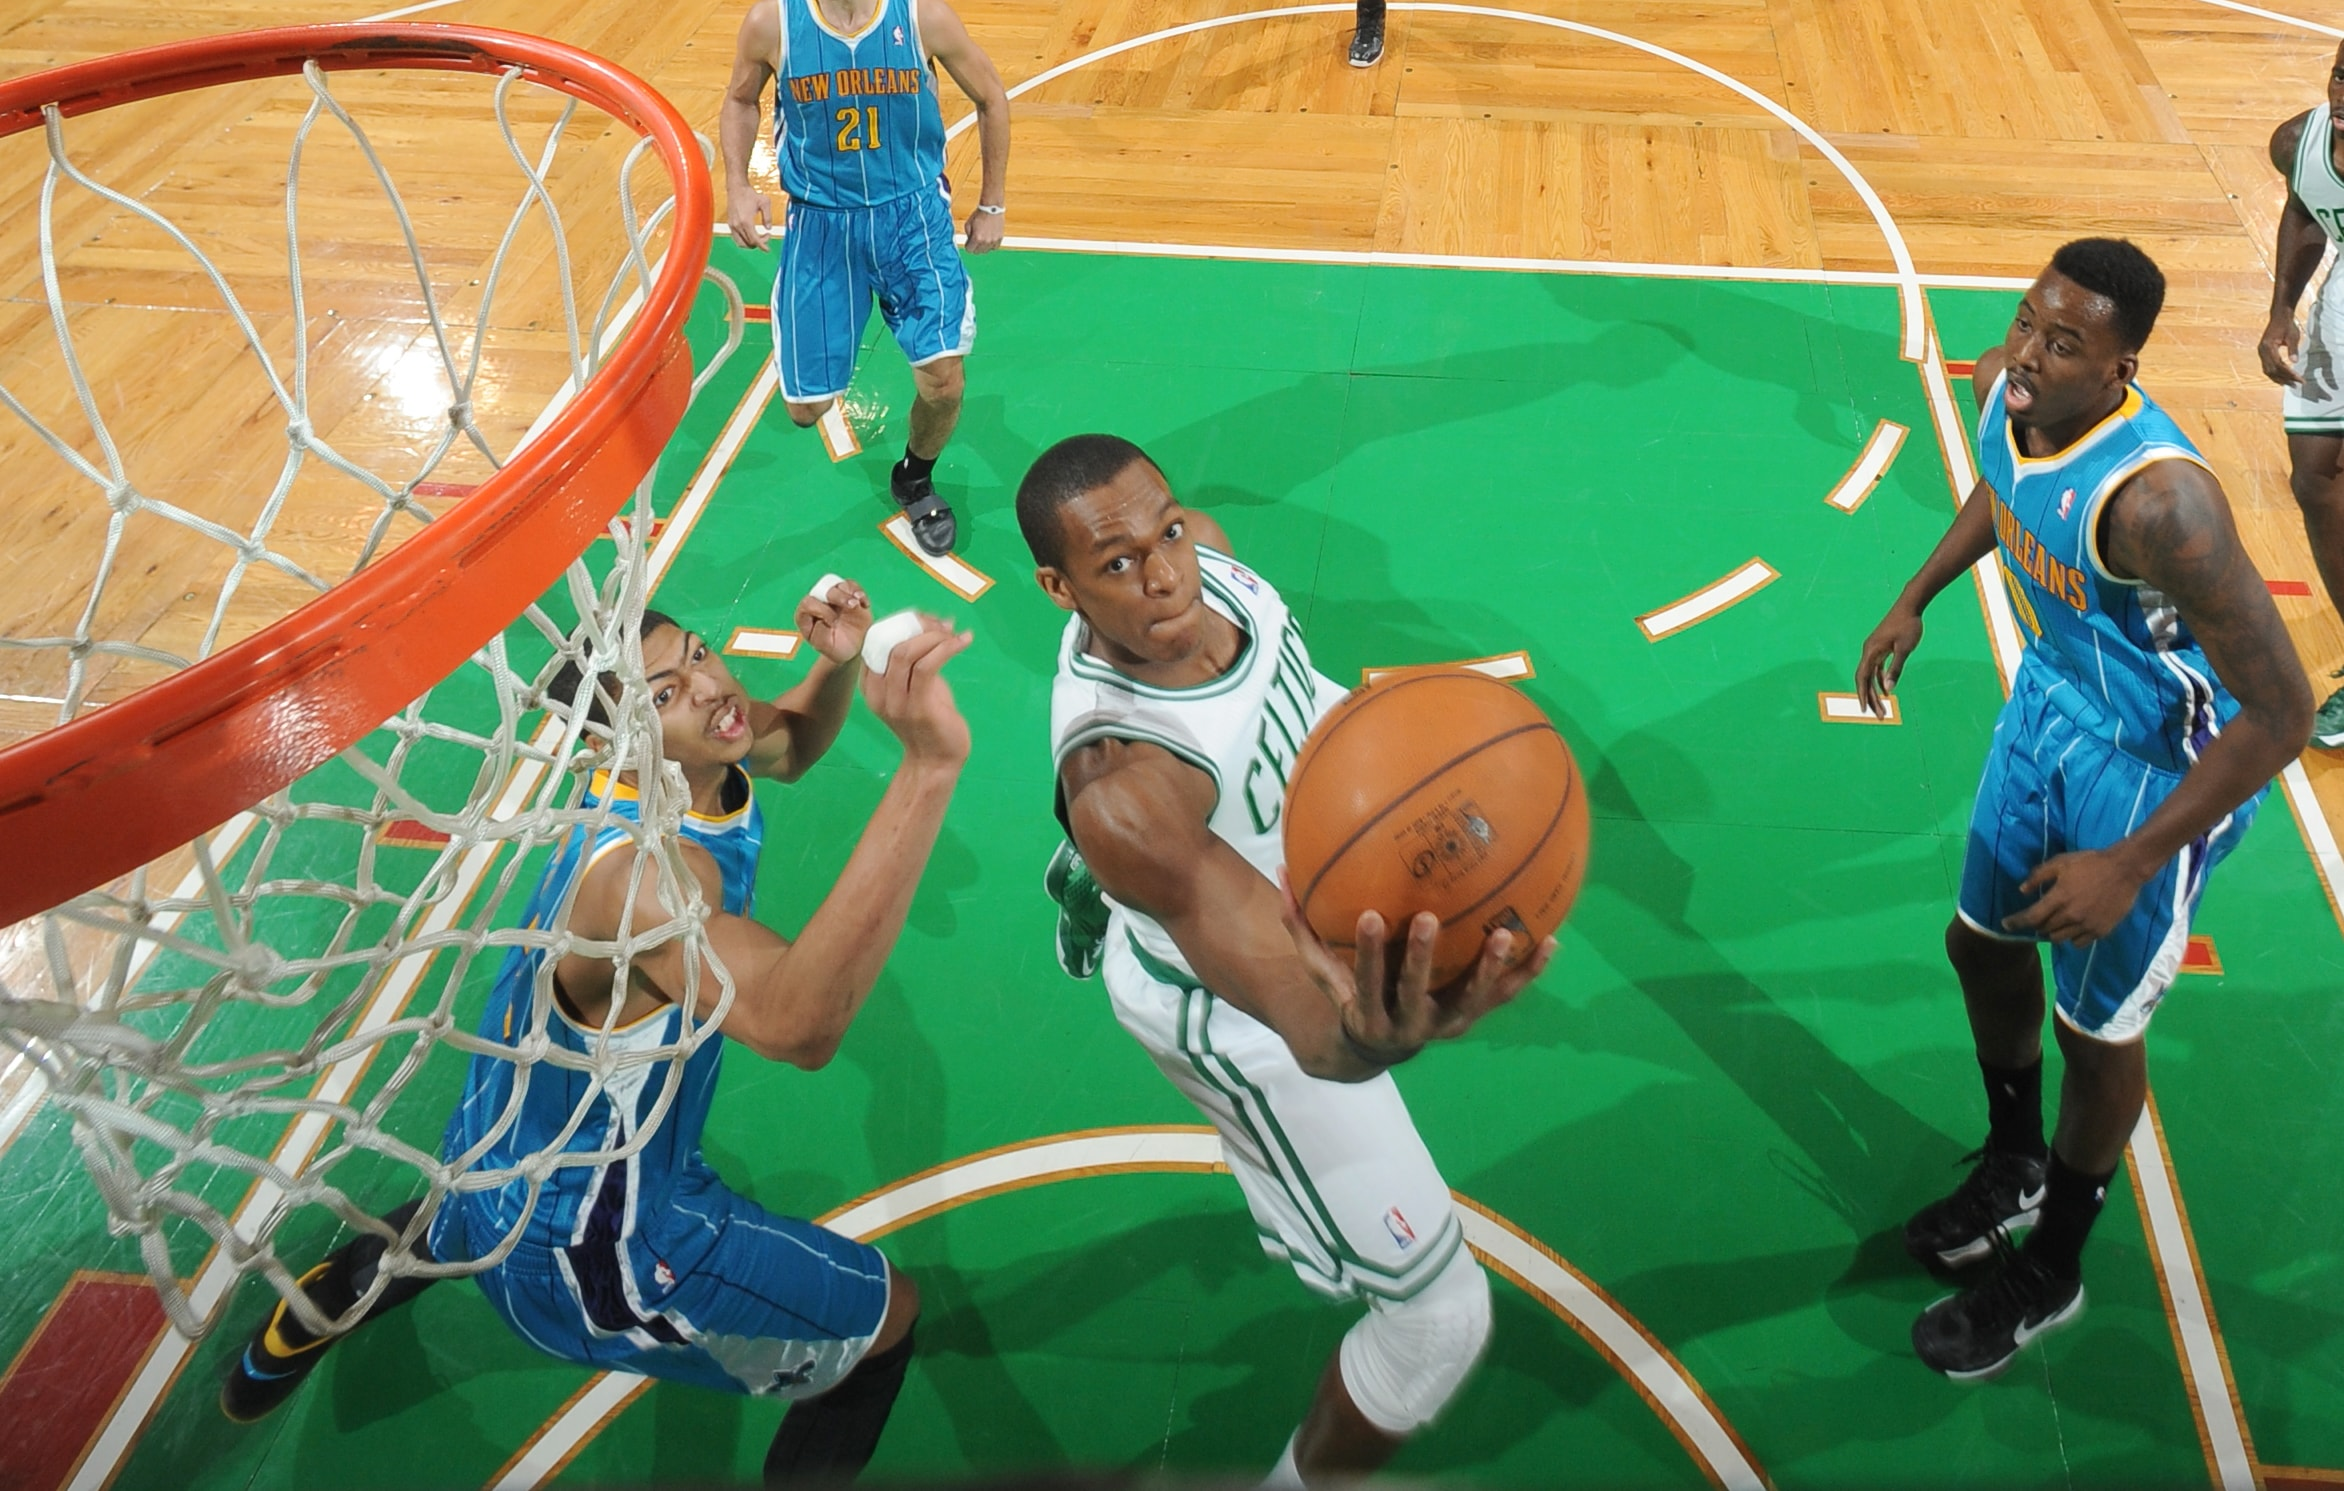 Meet the Team - Rajon Rondo